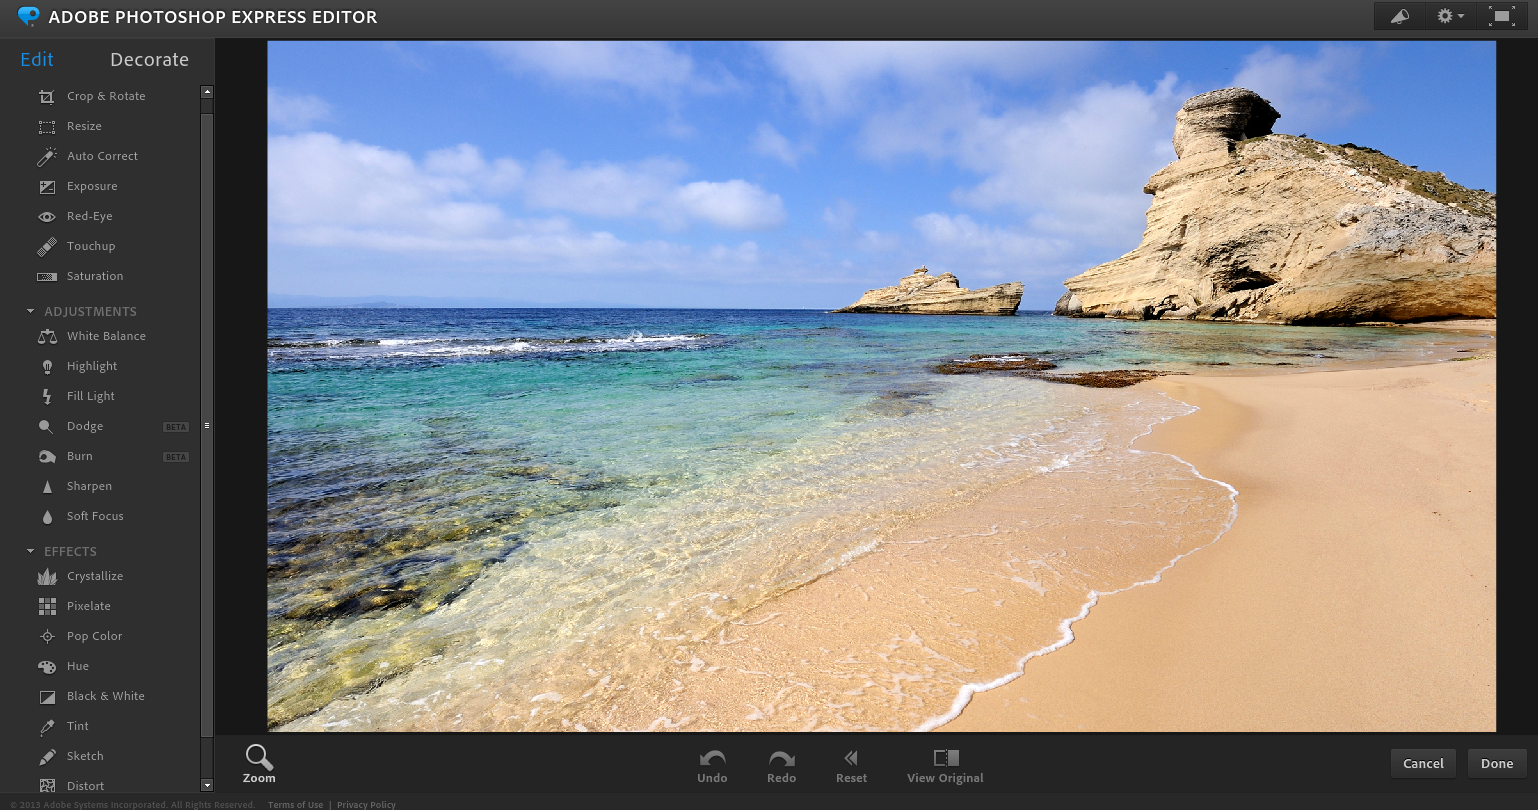 download photoshop express editor